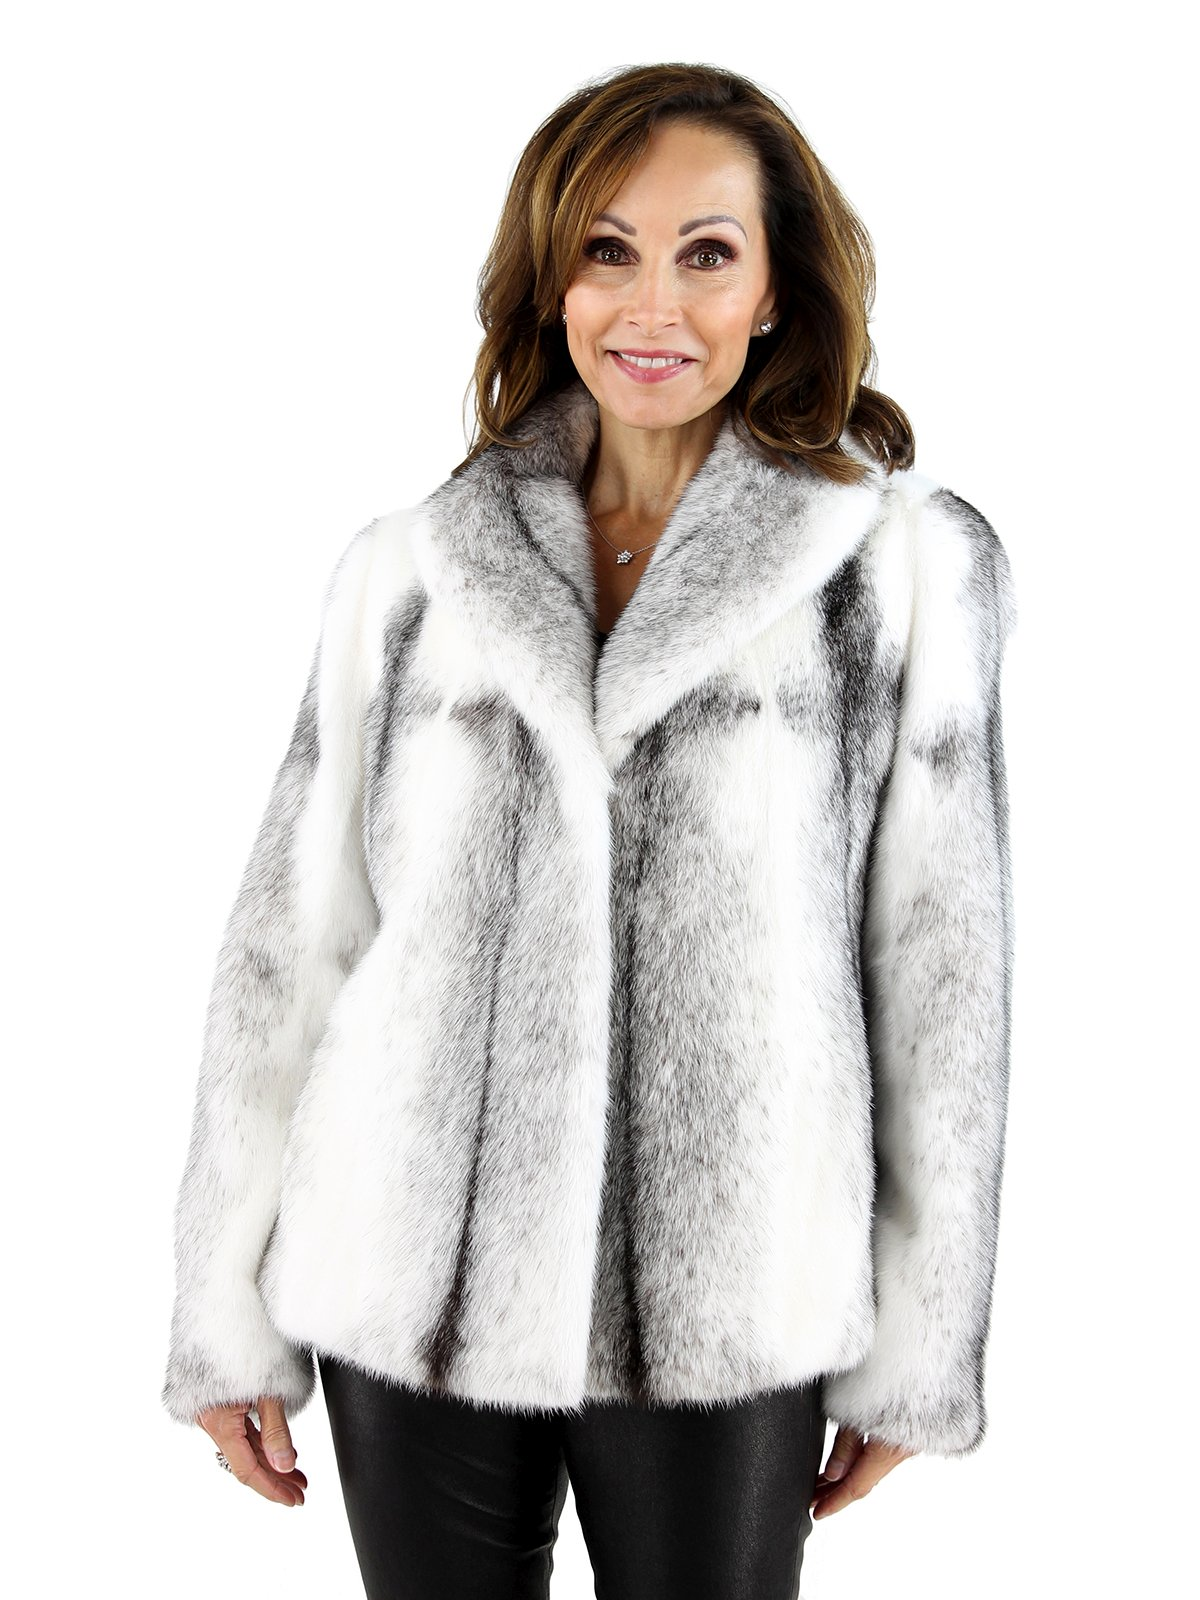 Women's White and Black Cross Mink Fur Jacket